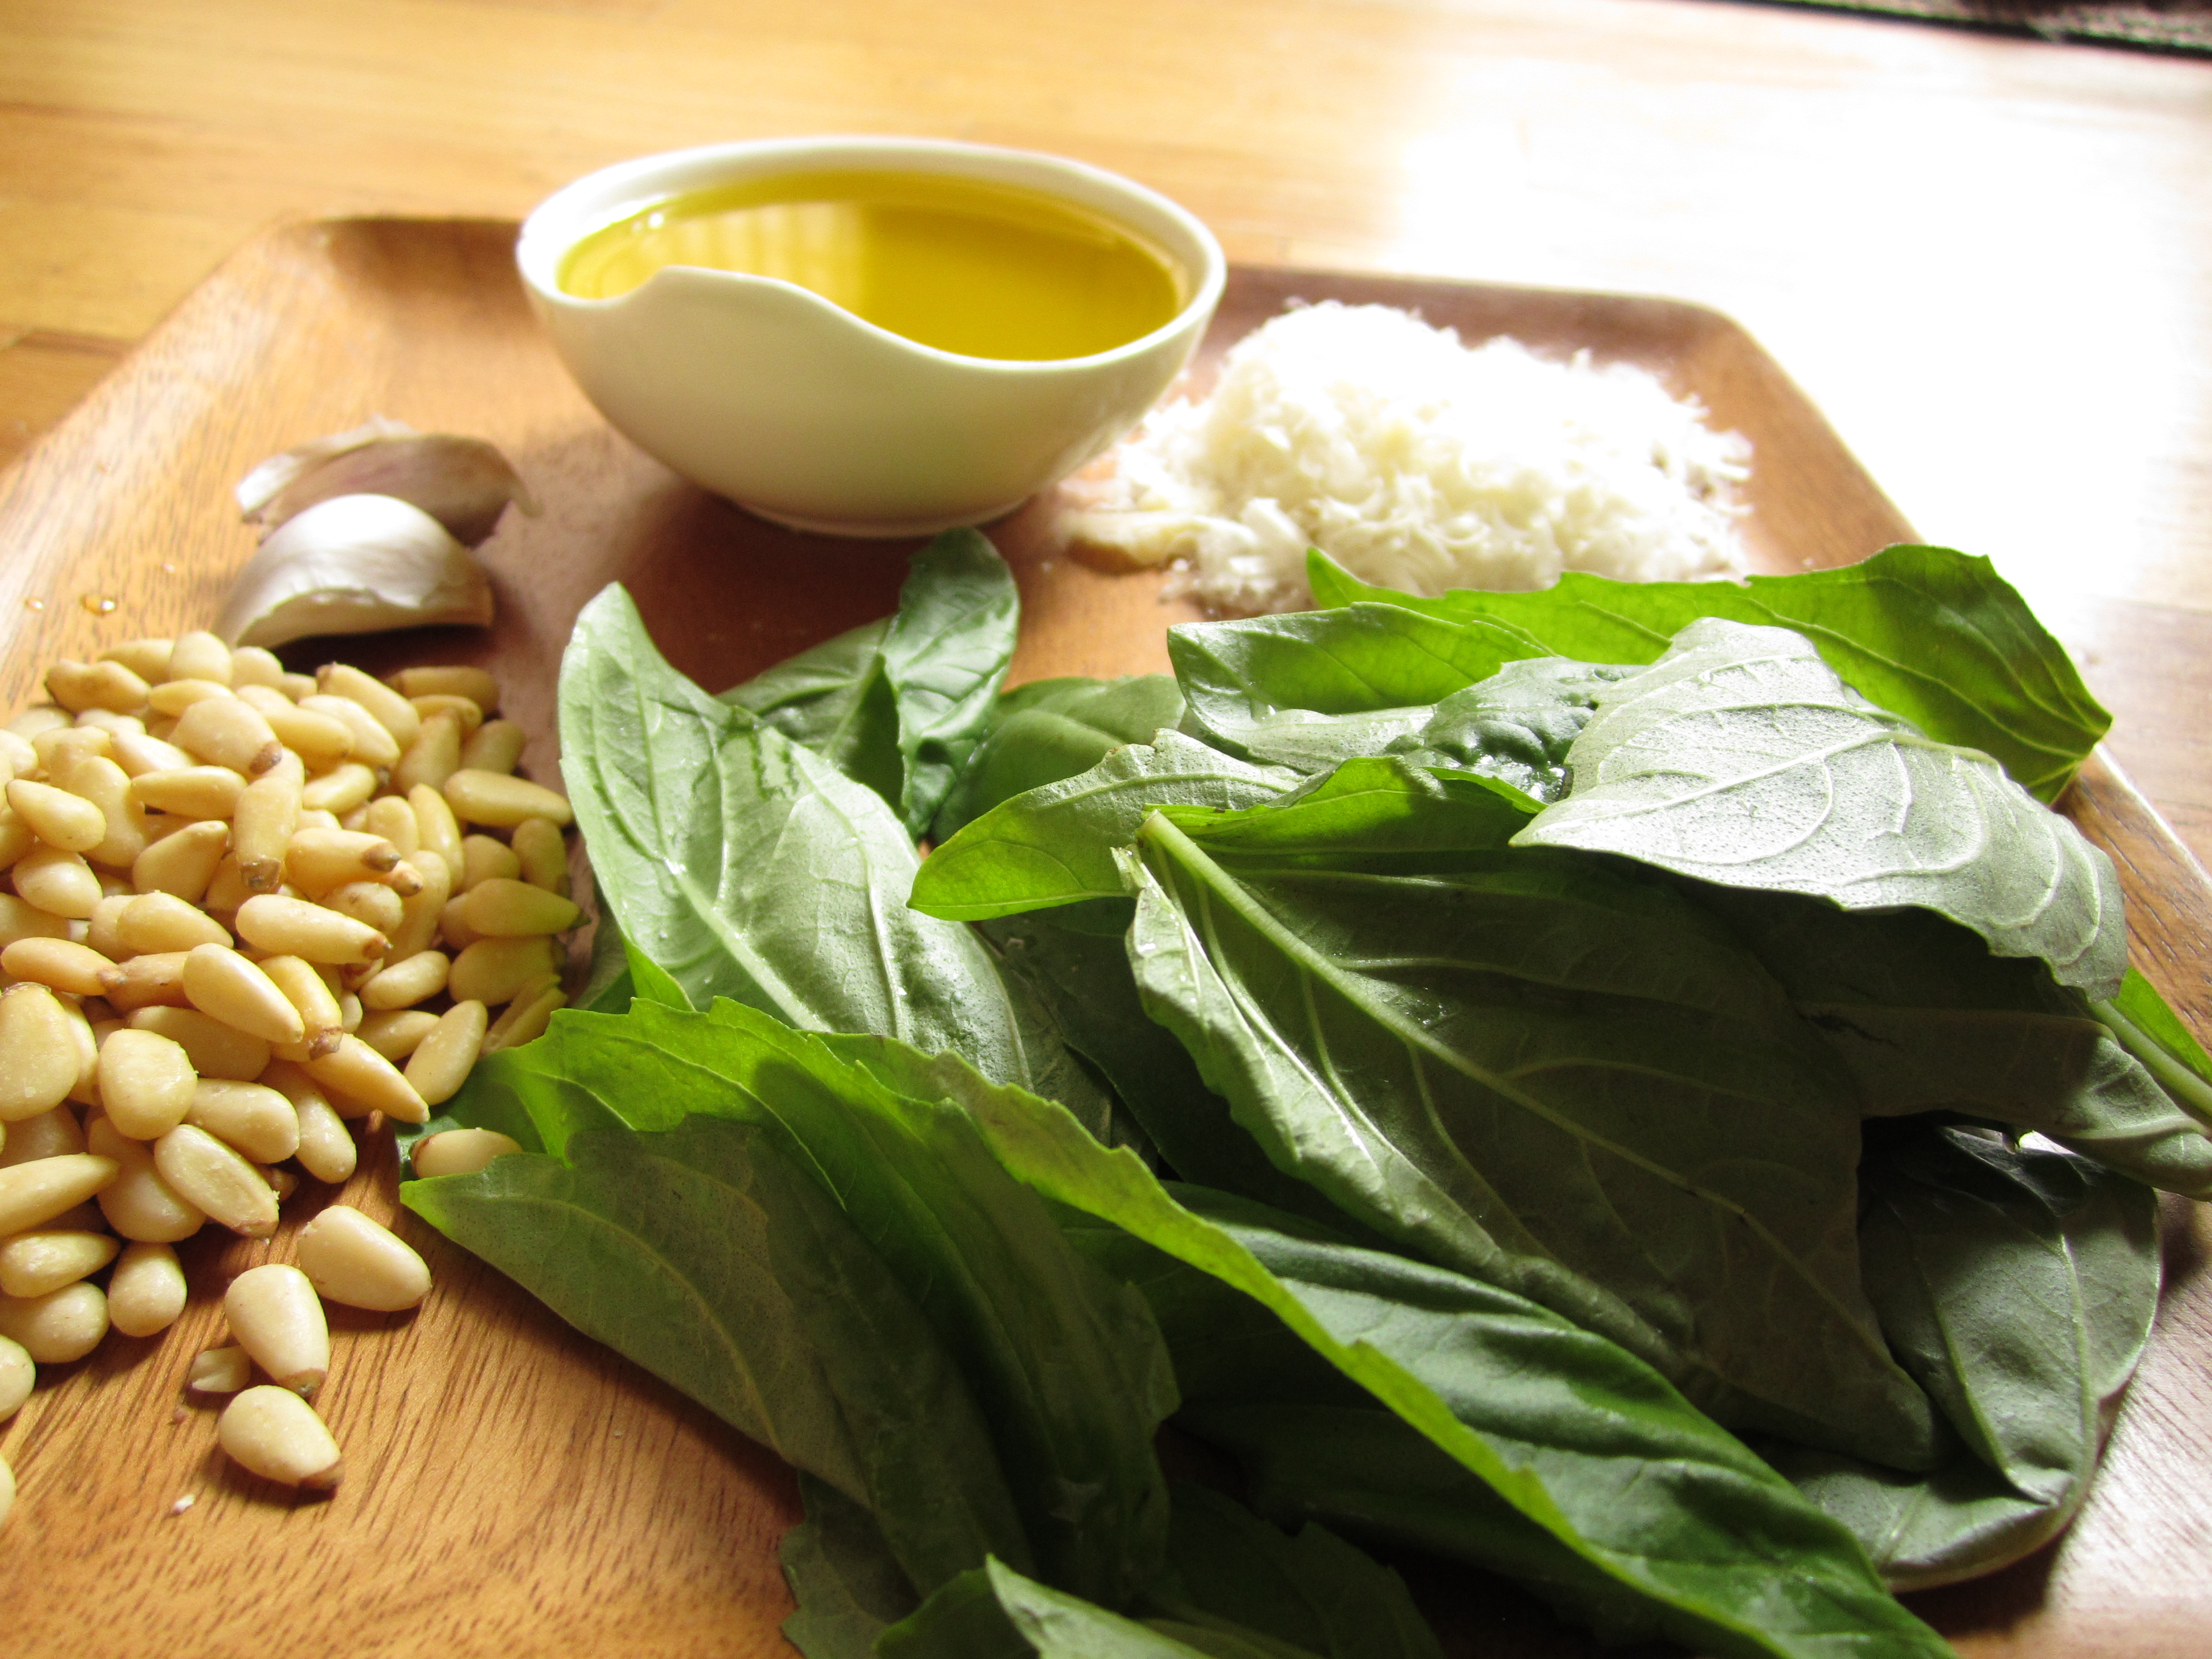 How To Make Battuto And Pesto Leaning Ladder